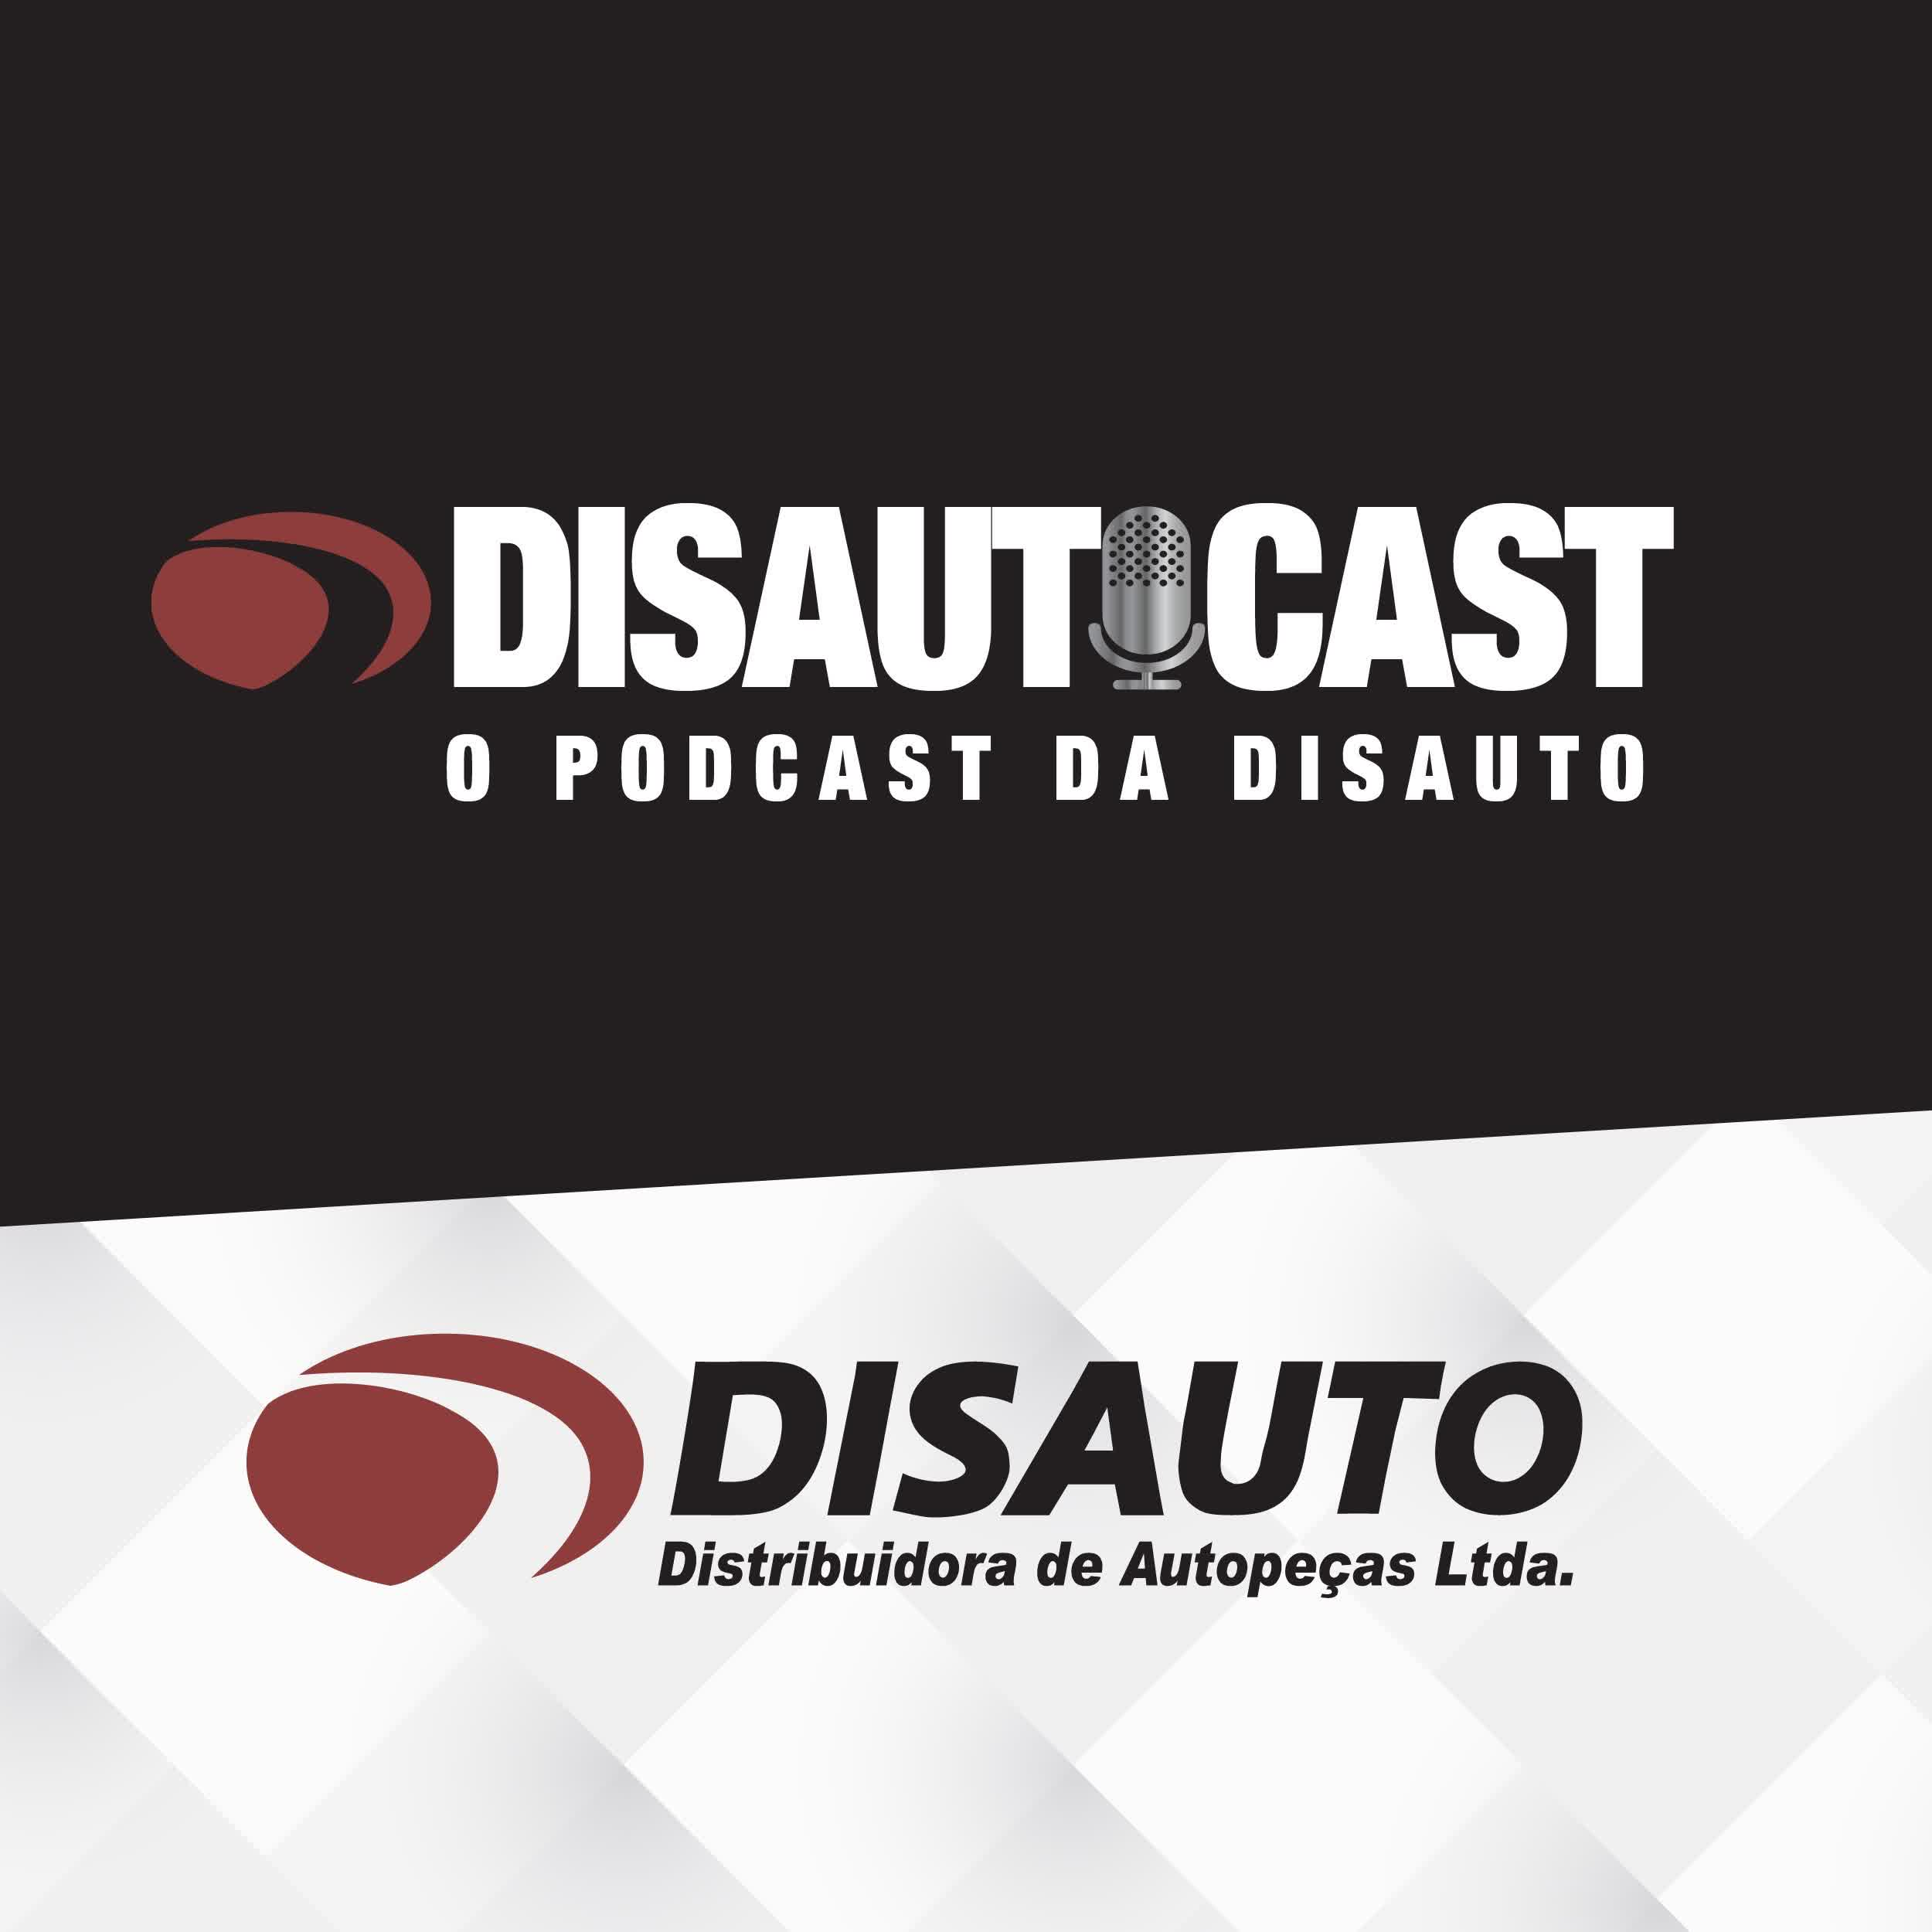 DISAUTOCAST - O PODCAST DA DISAUTO